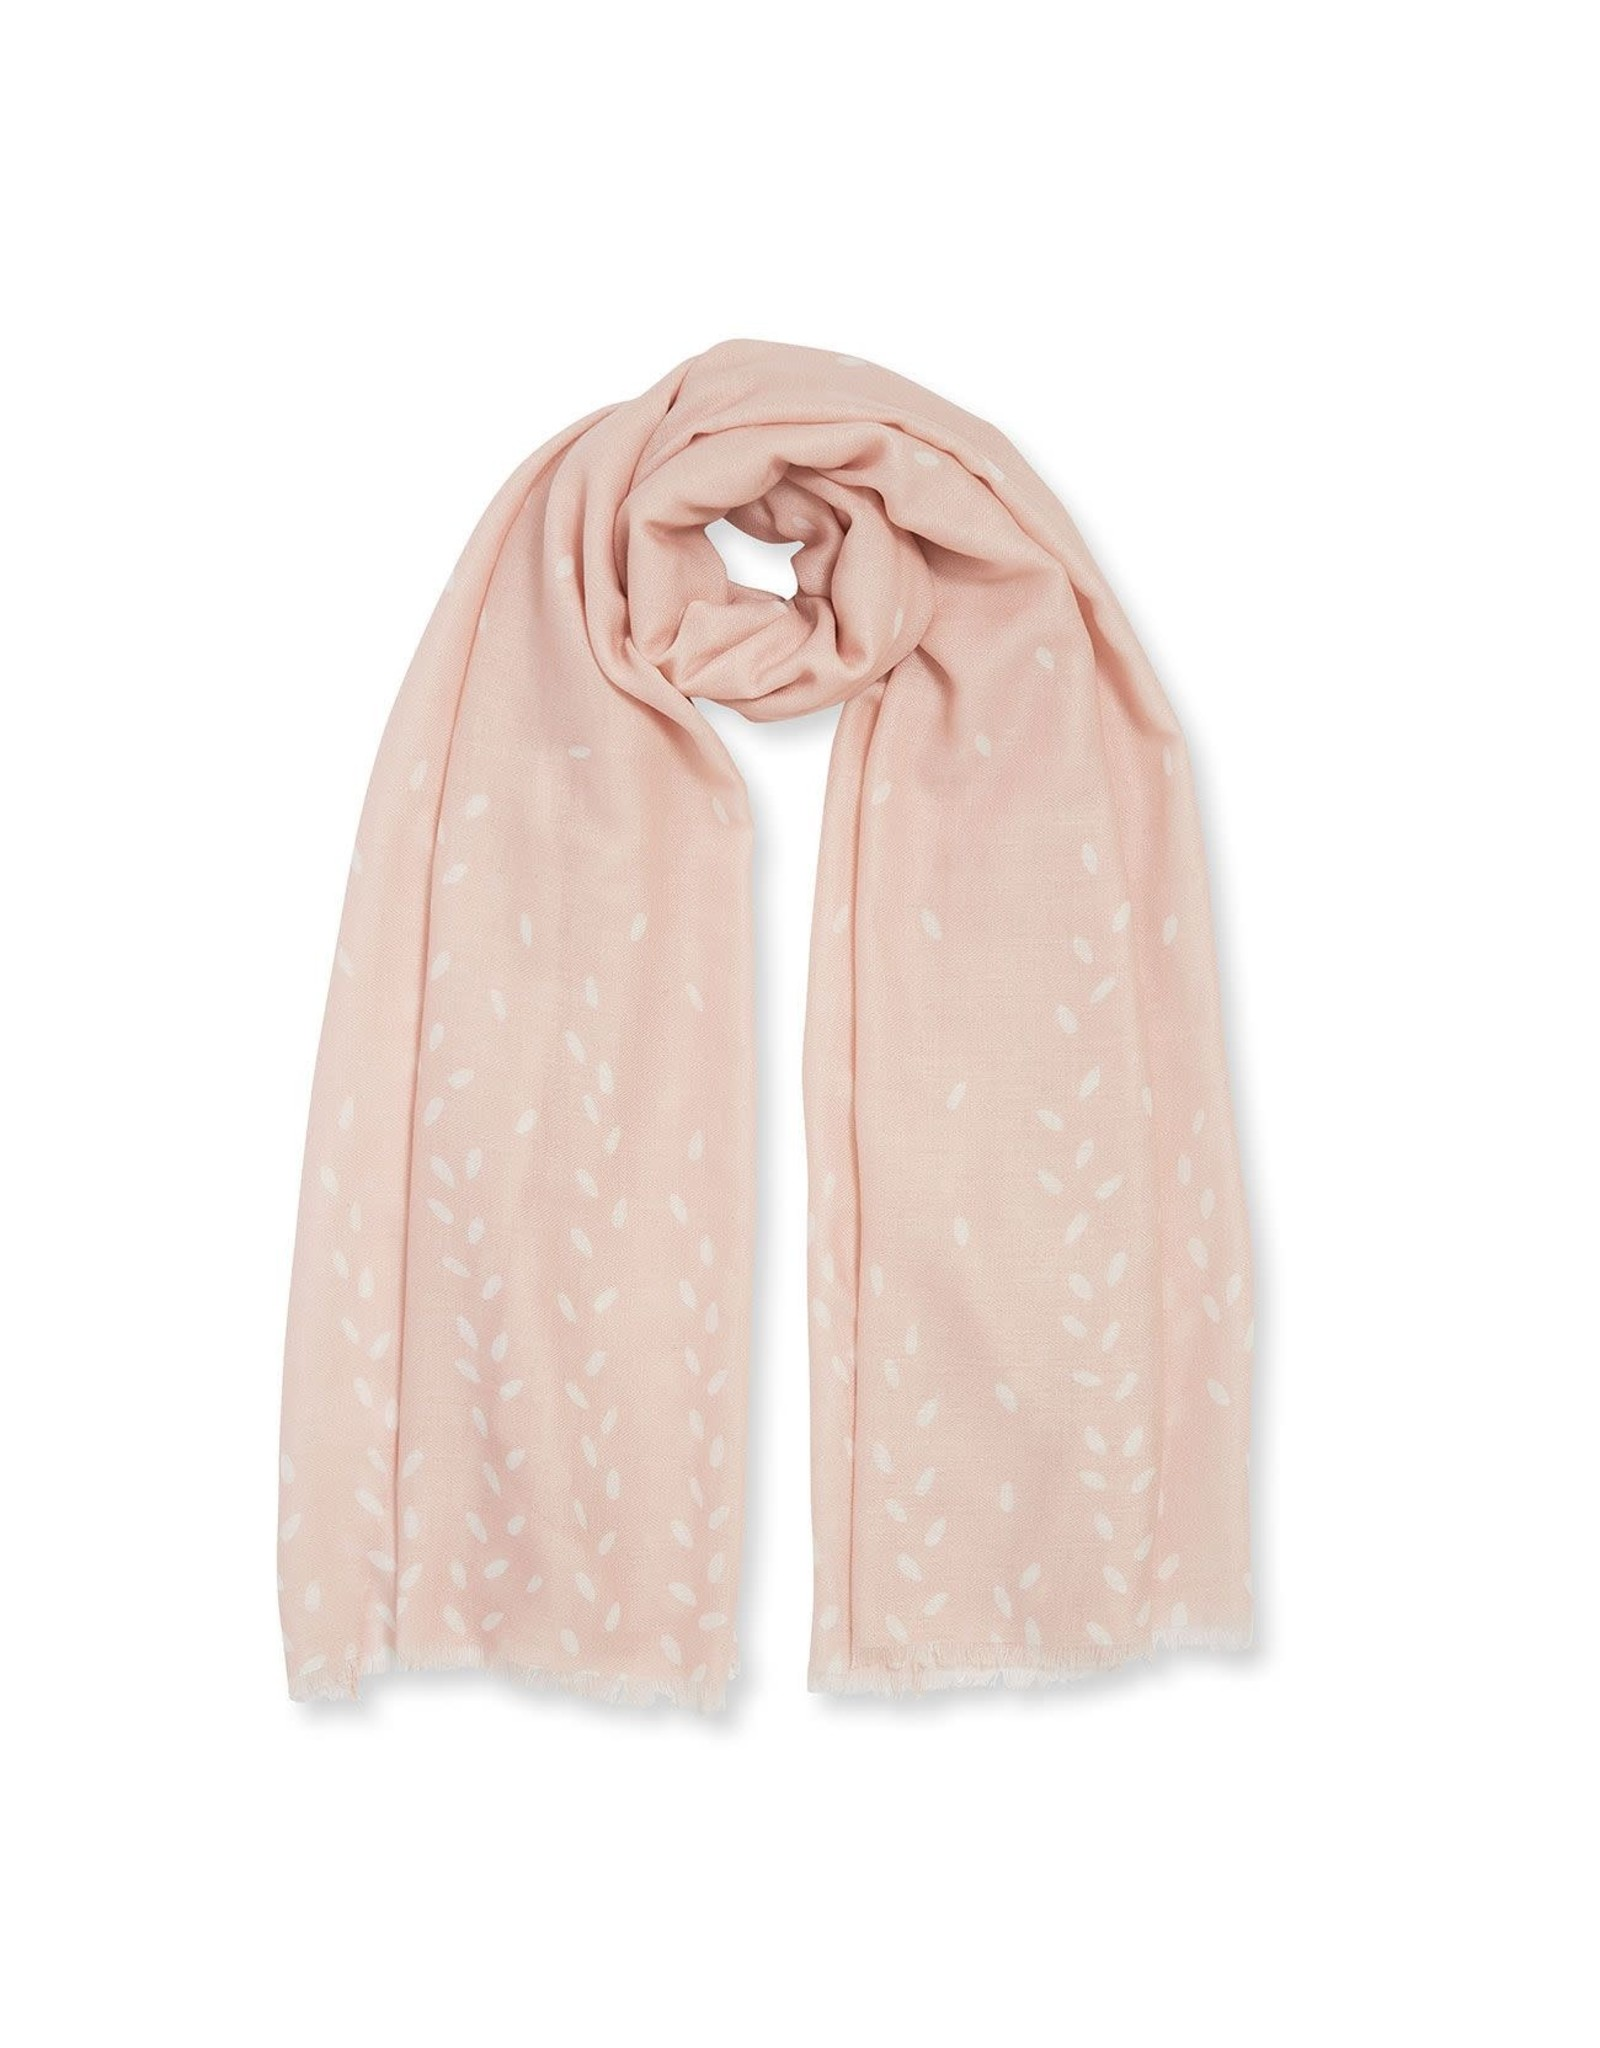 Katie Loxton Wrapped up in Love - Hello Lovely - Nude Pink